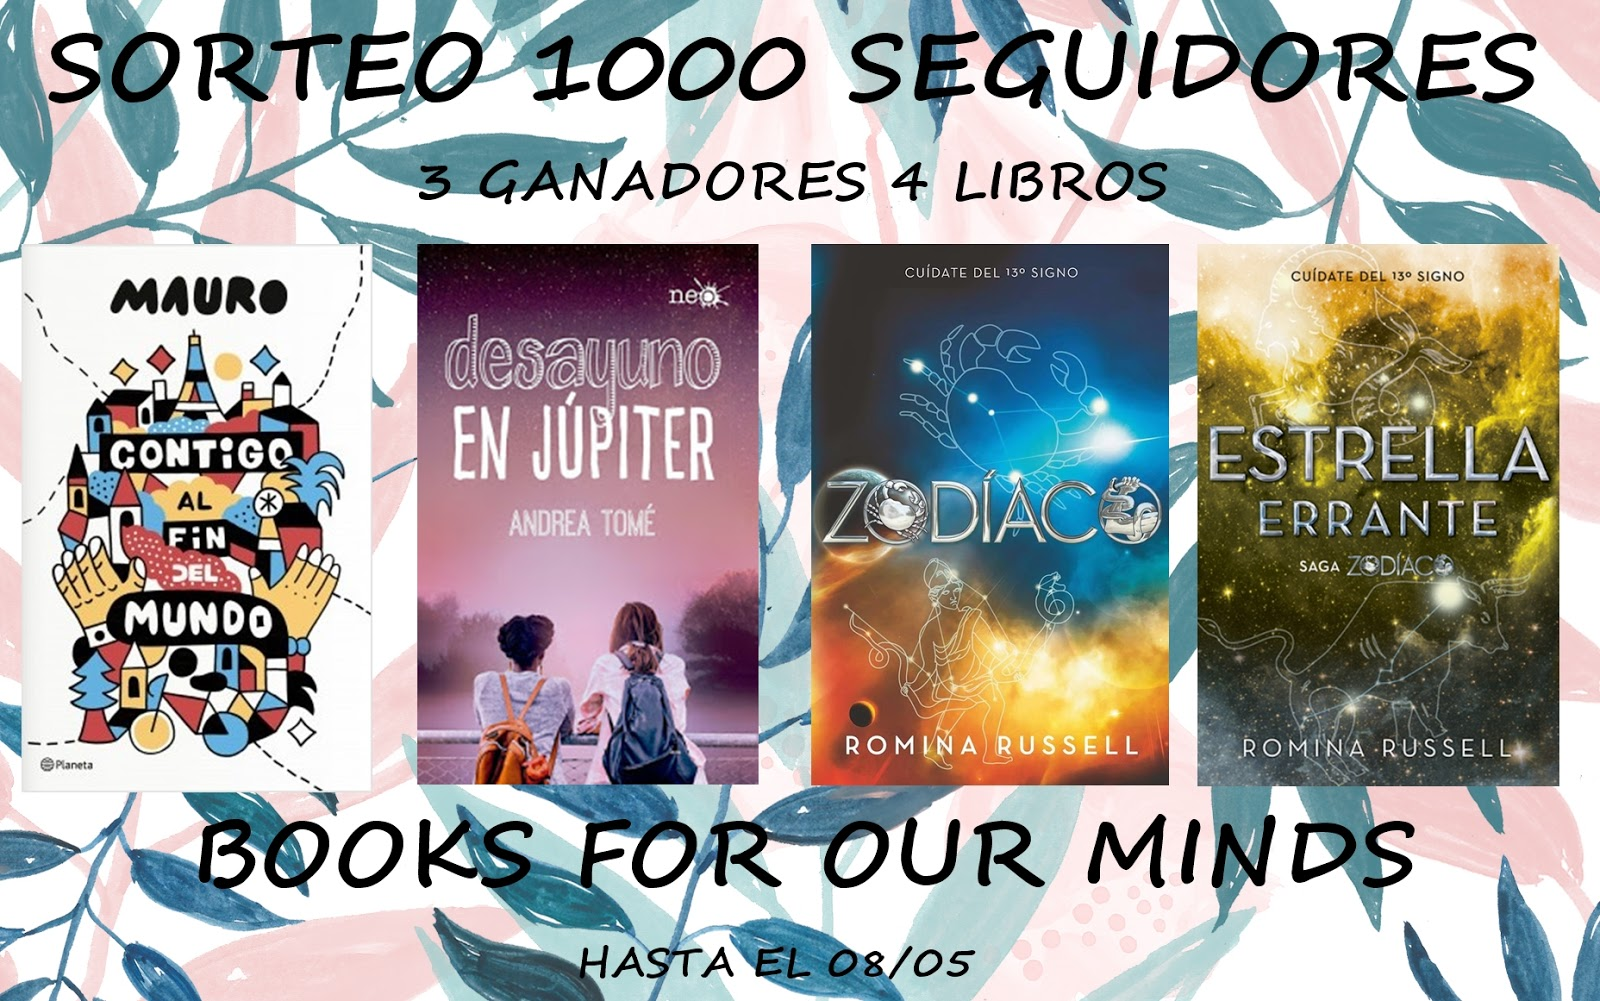 Sorteo del blog Books For Our Minds